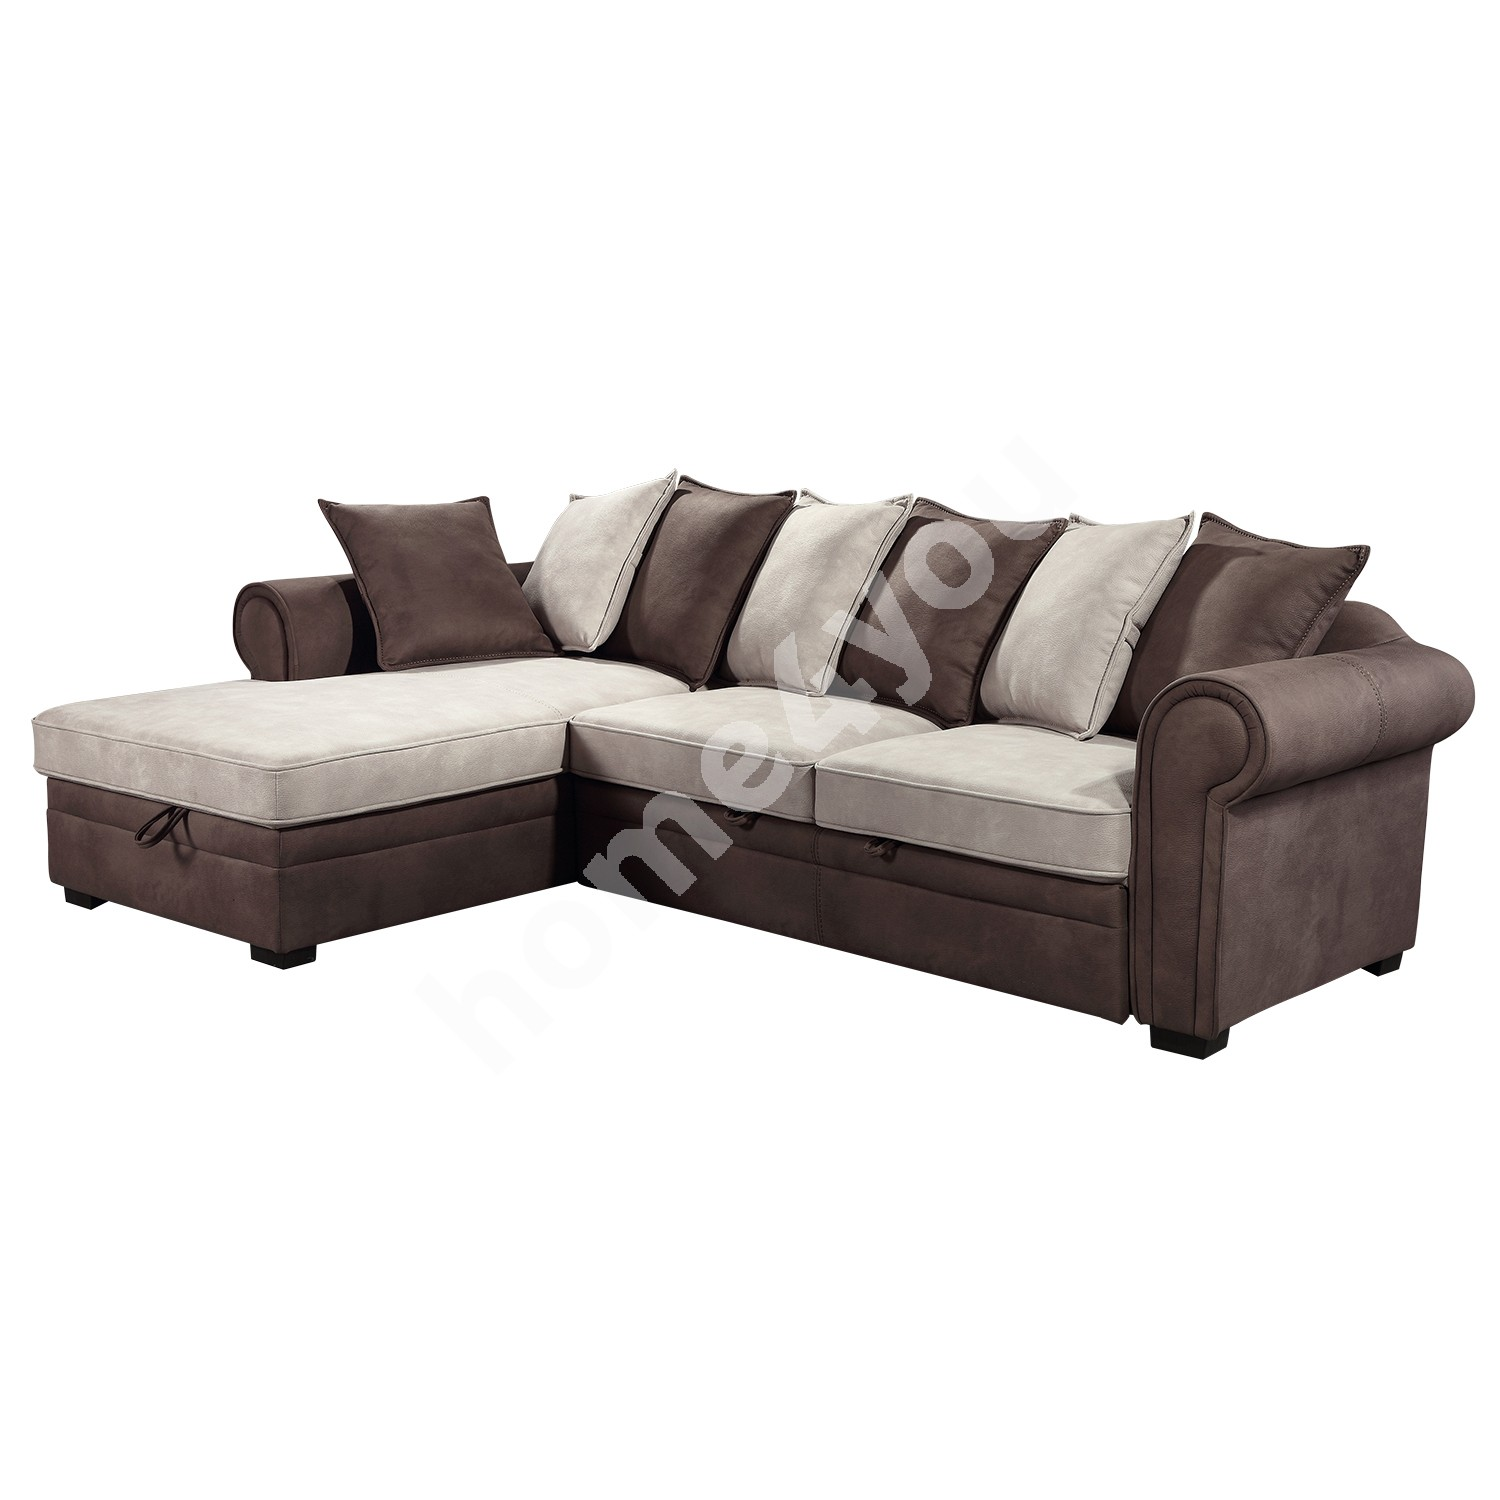 Corner sofa bed LUCREZIA with bedding box, left corner 284x170/90xH90cm, cover material: fabric, color: brown / beige